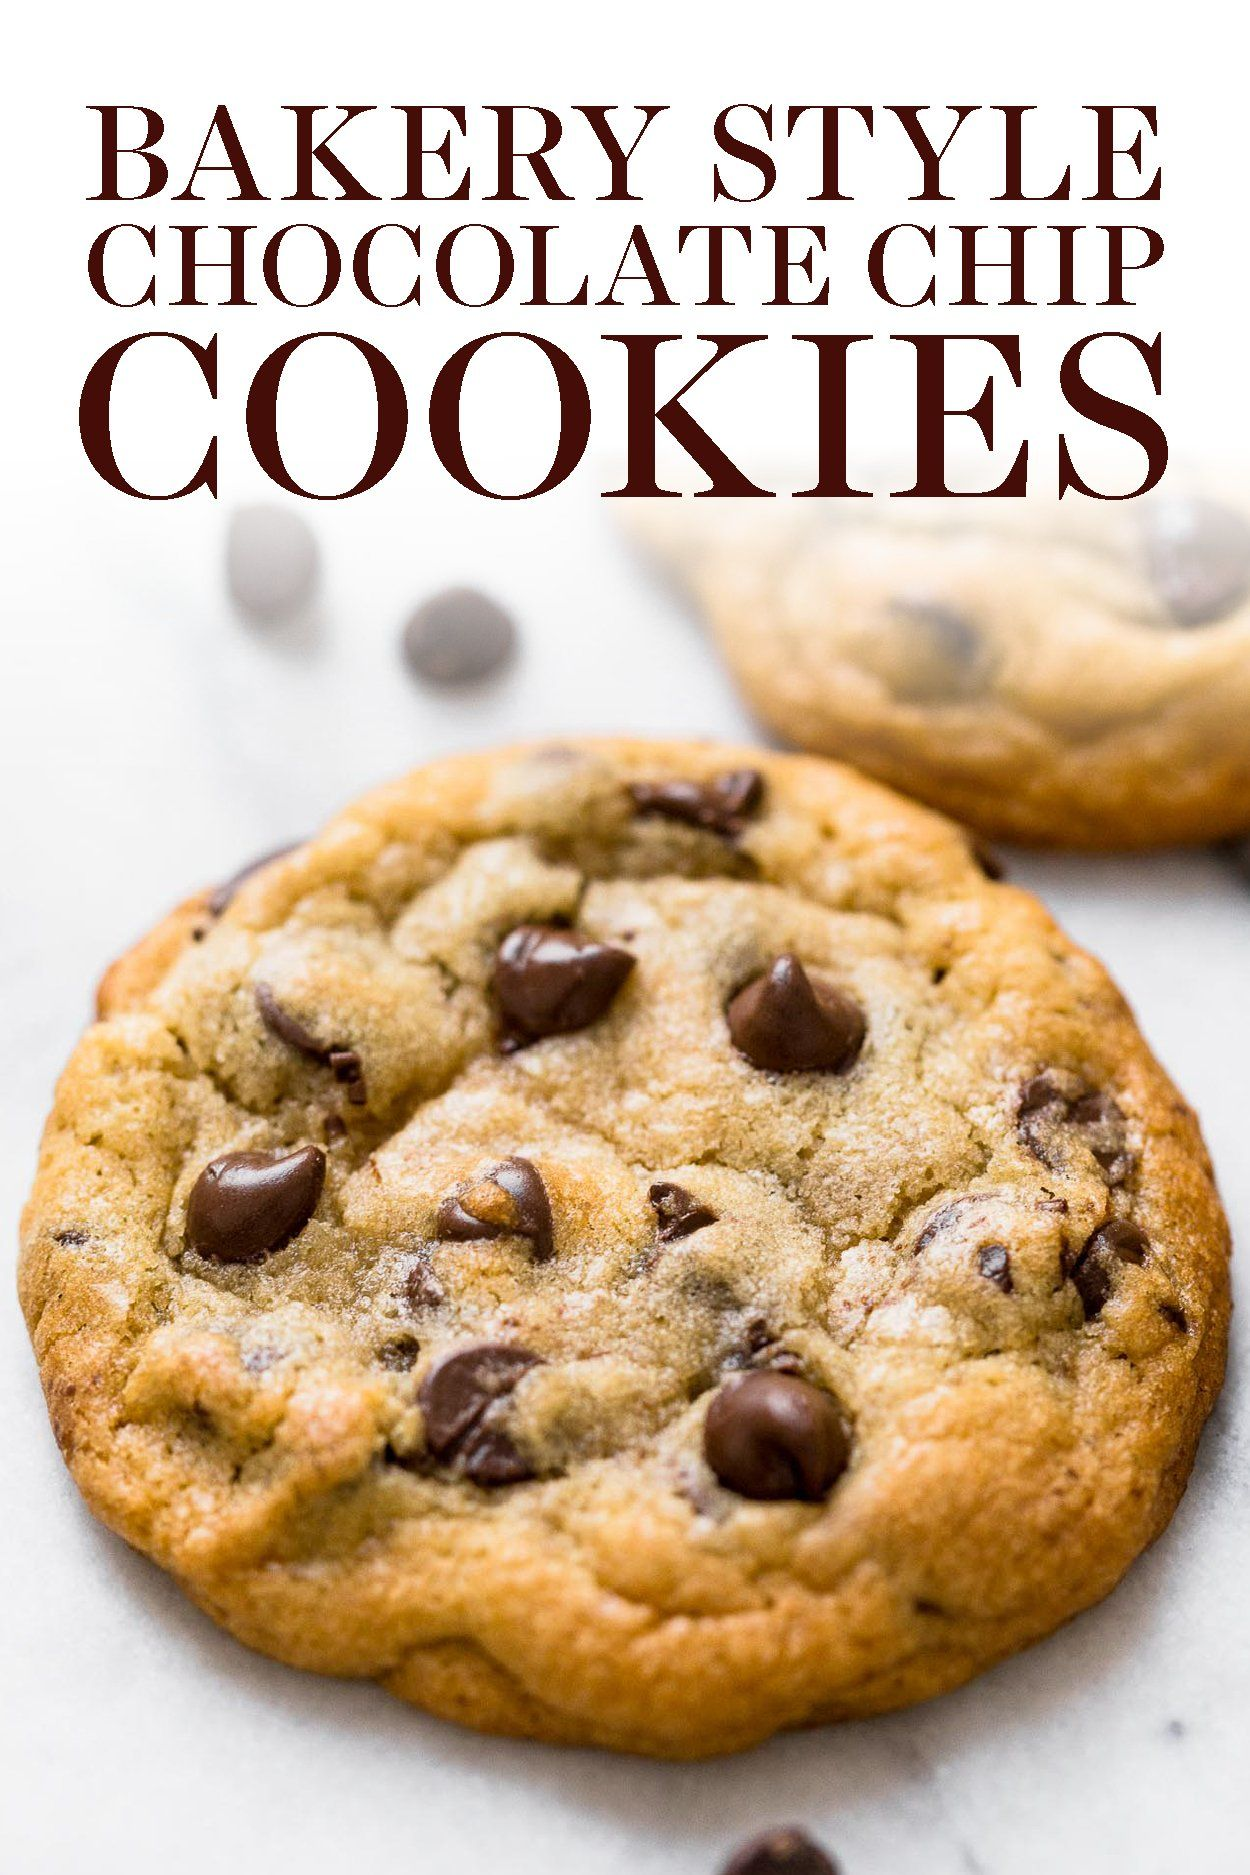 Best Bakery Style Chocolate Chip Cookies Recipe -